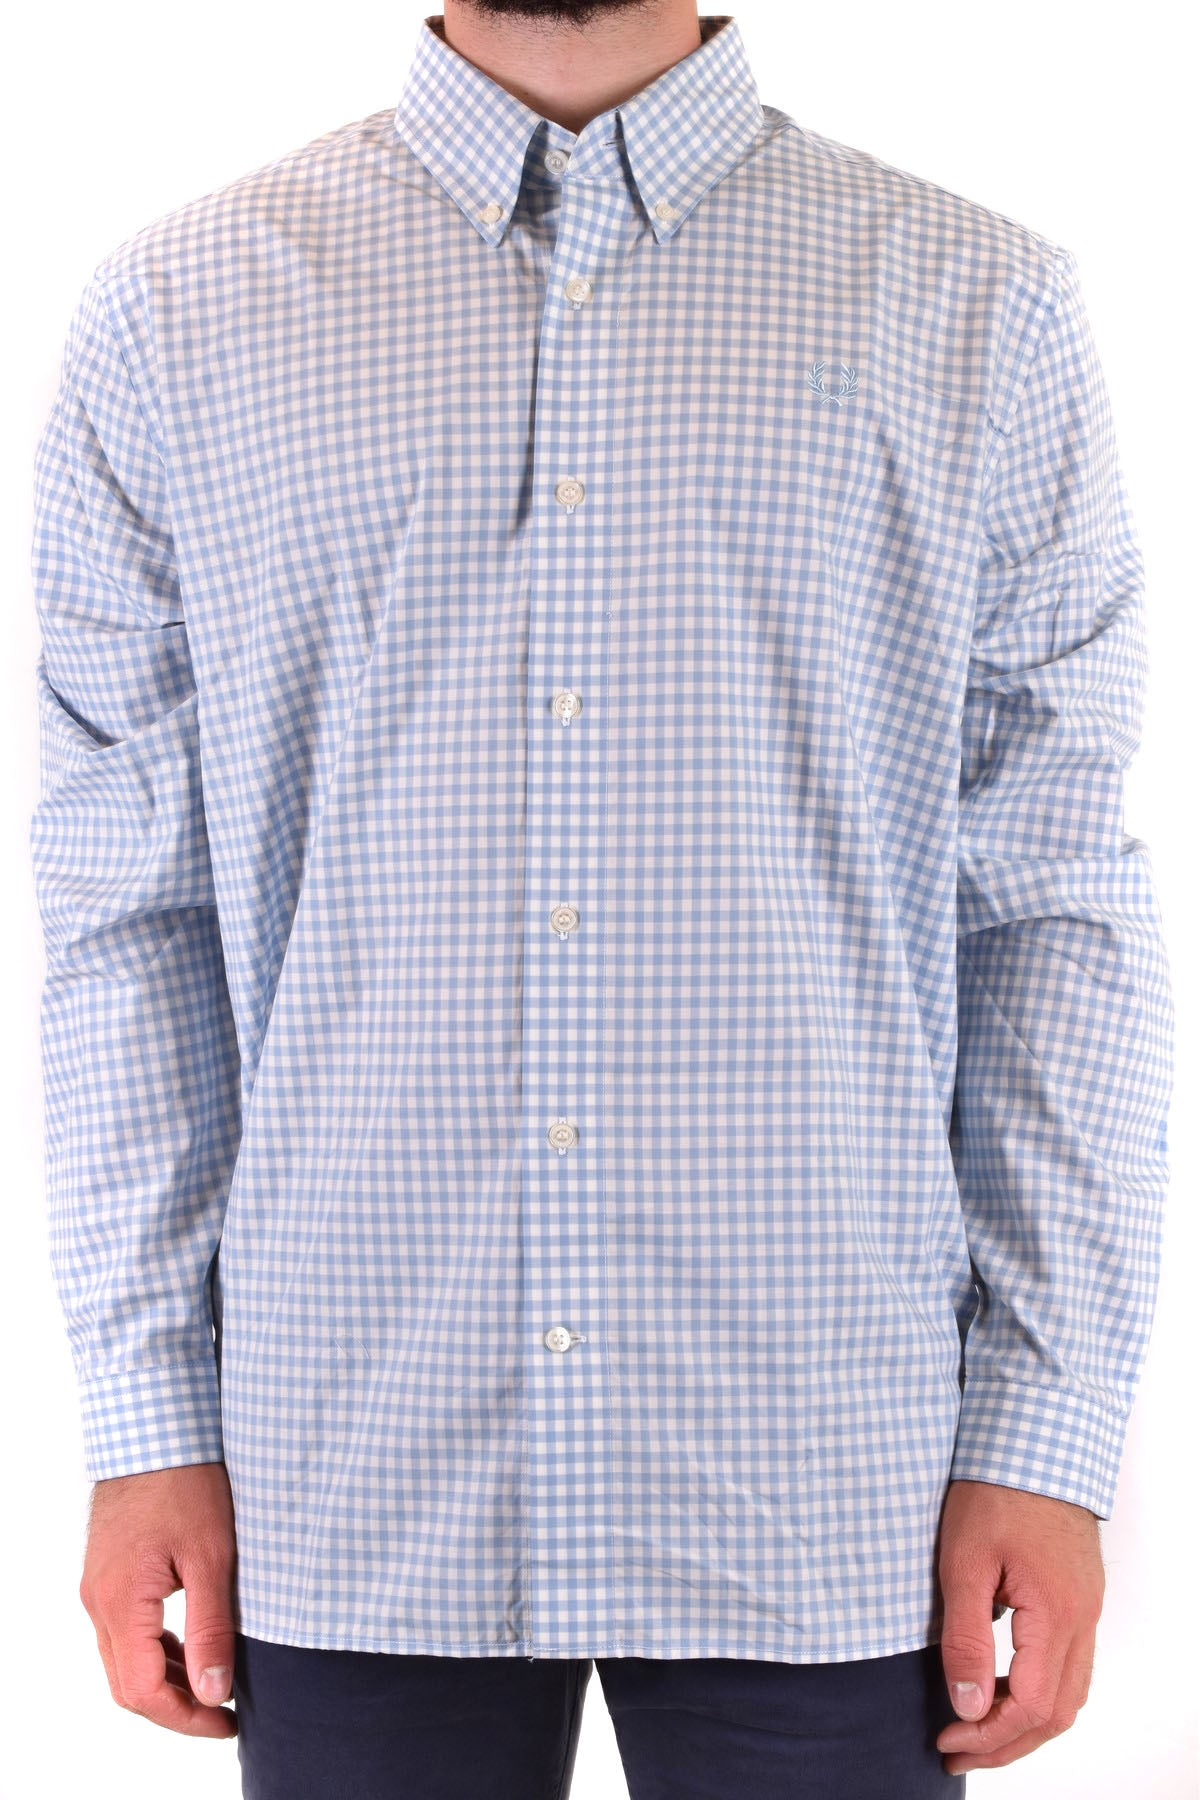 Shirt Fred Perry-Men's Fashion - Men's Clothing - Shirts-XS-Product Details Terms: New With LabelClothing Type: CamiciaMain Color: BlueSeason: Spring / SummerMade In: ChinaGender: ManSize: IntComposition: Cotton 100%Year: 2020Manufacturer Part Number: M5554 144120-Keyomi-Sook